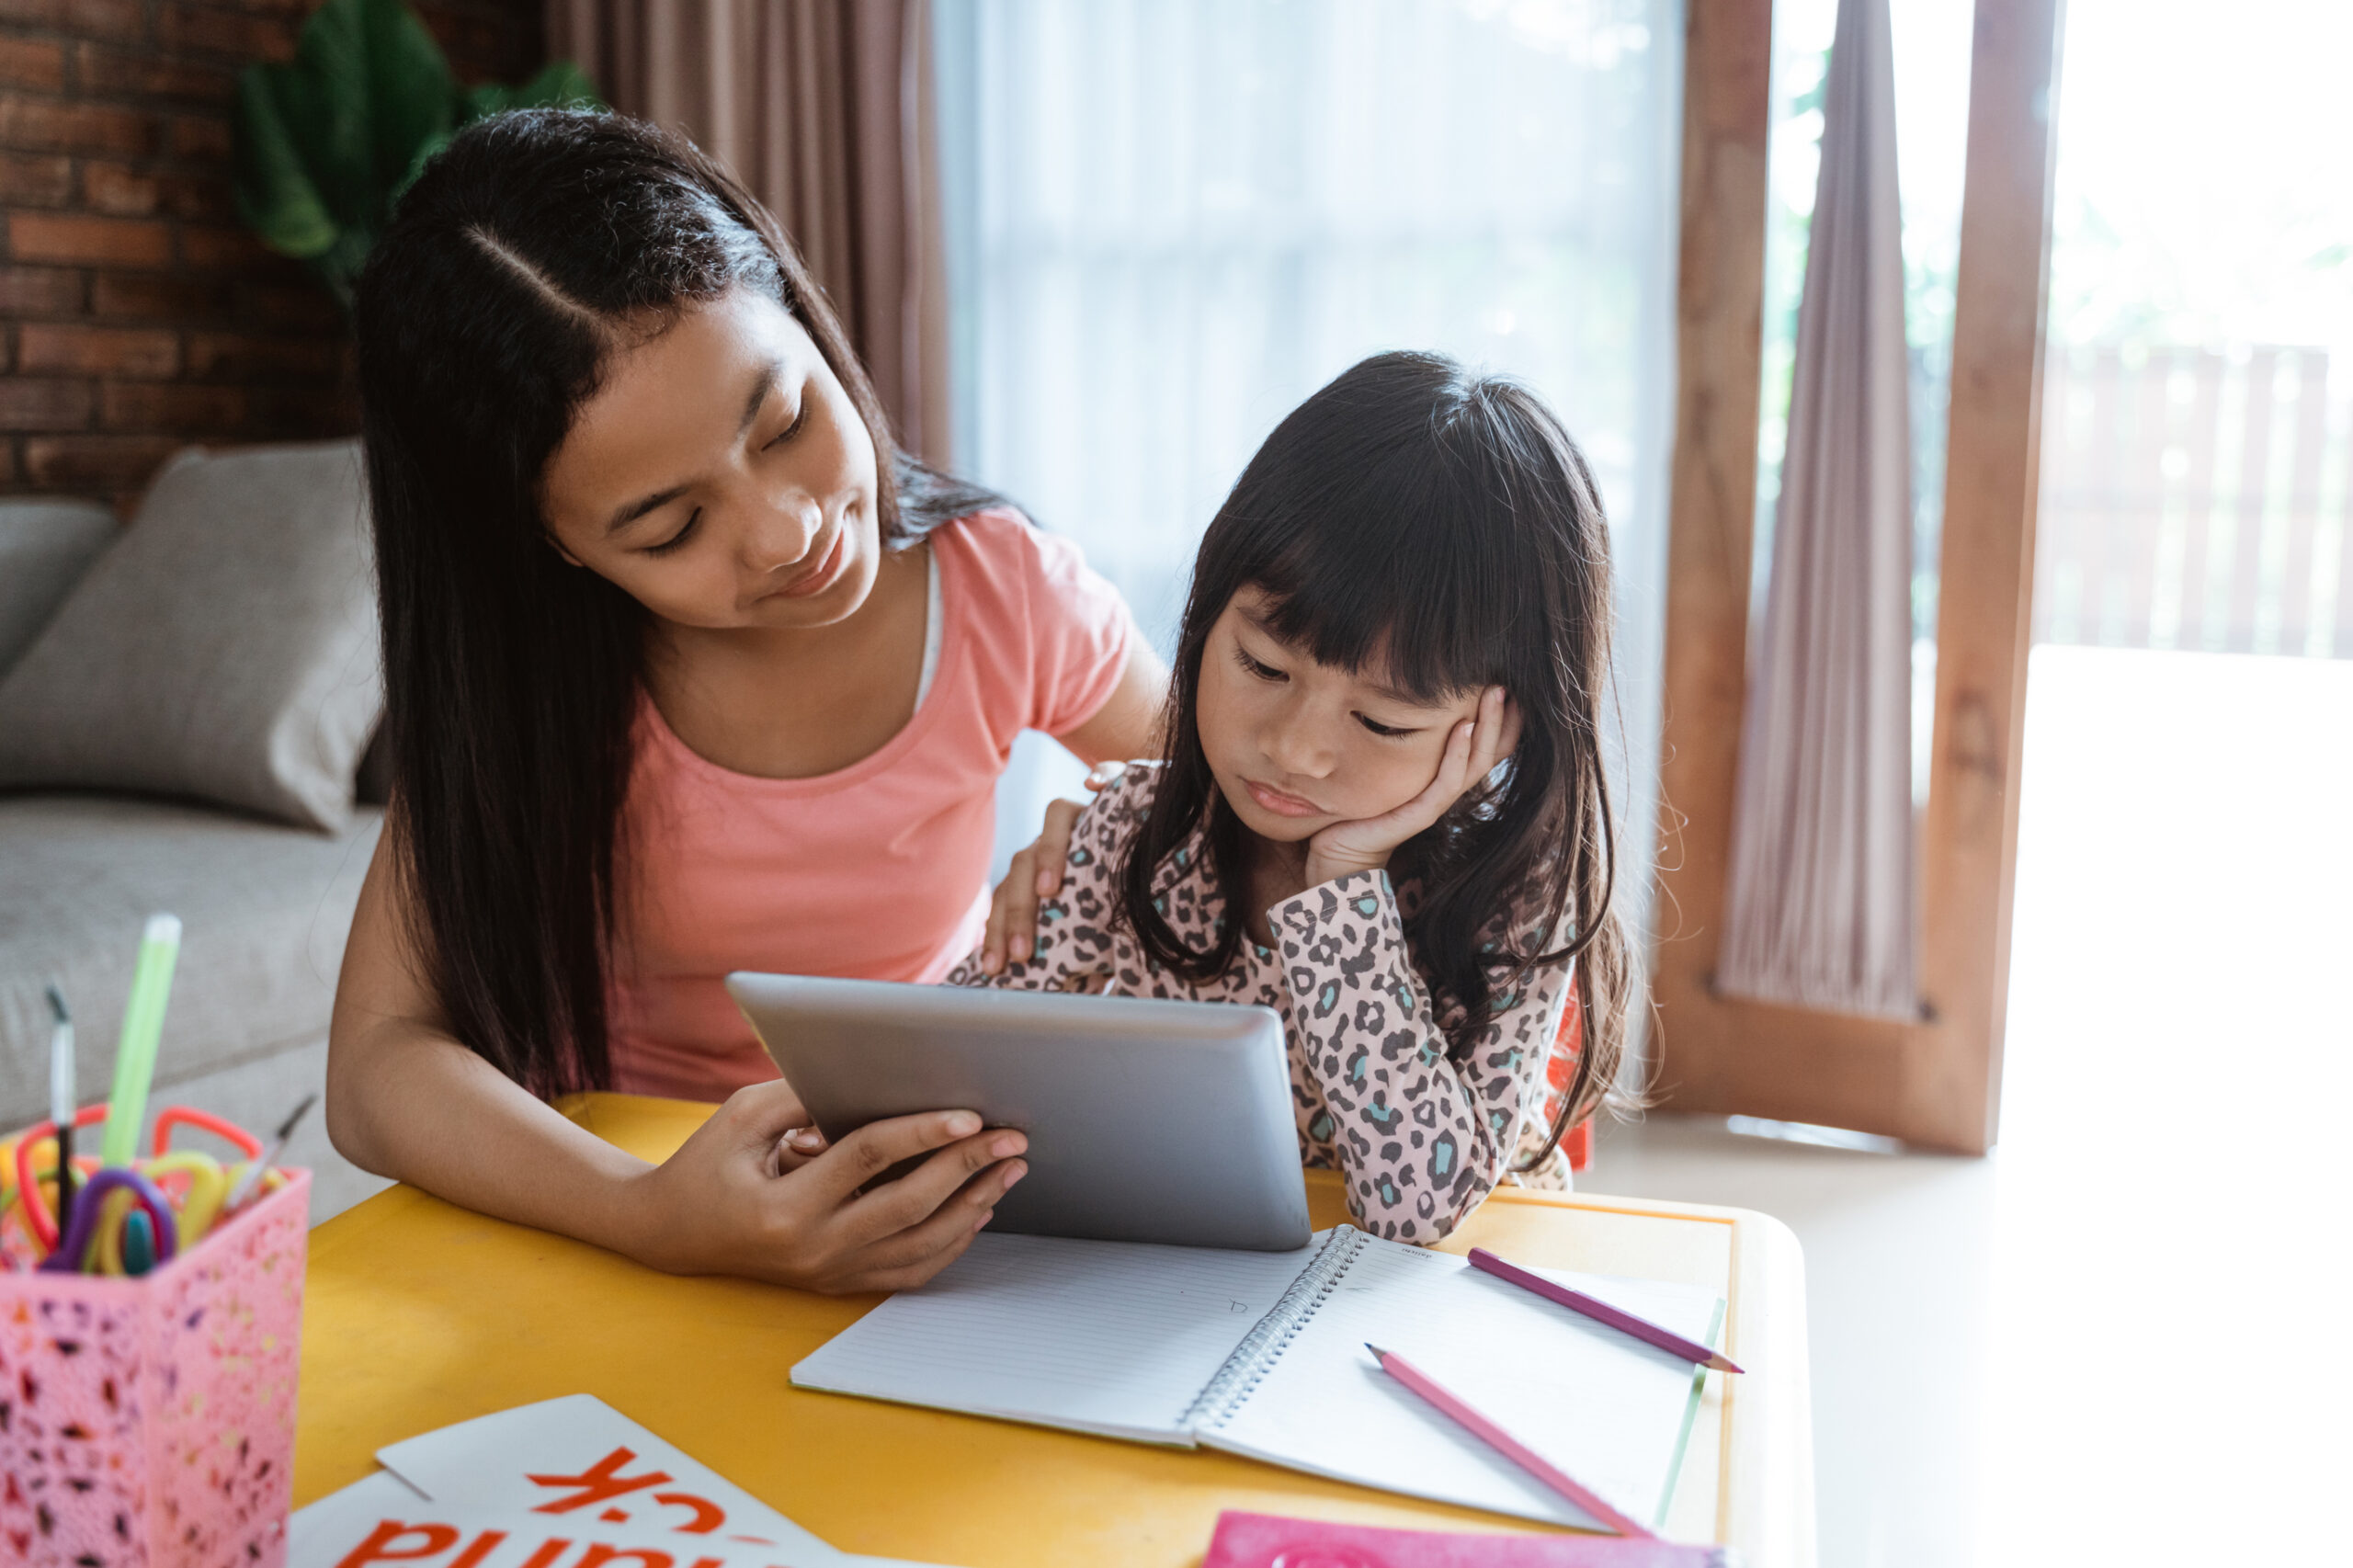 websites for kindergarten; kindergarten learning websites; kid learning websites; free online educational games for kindergarten; websites for kindergarteners to learn; good websites for kindergarteners; kindergarteners learning